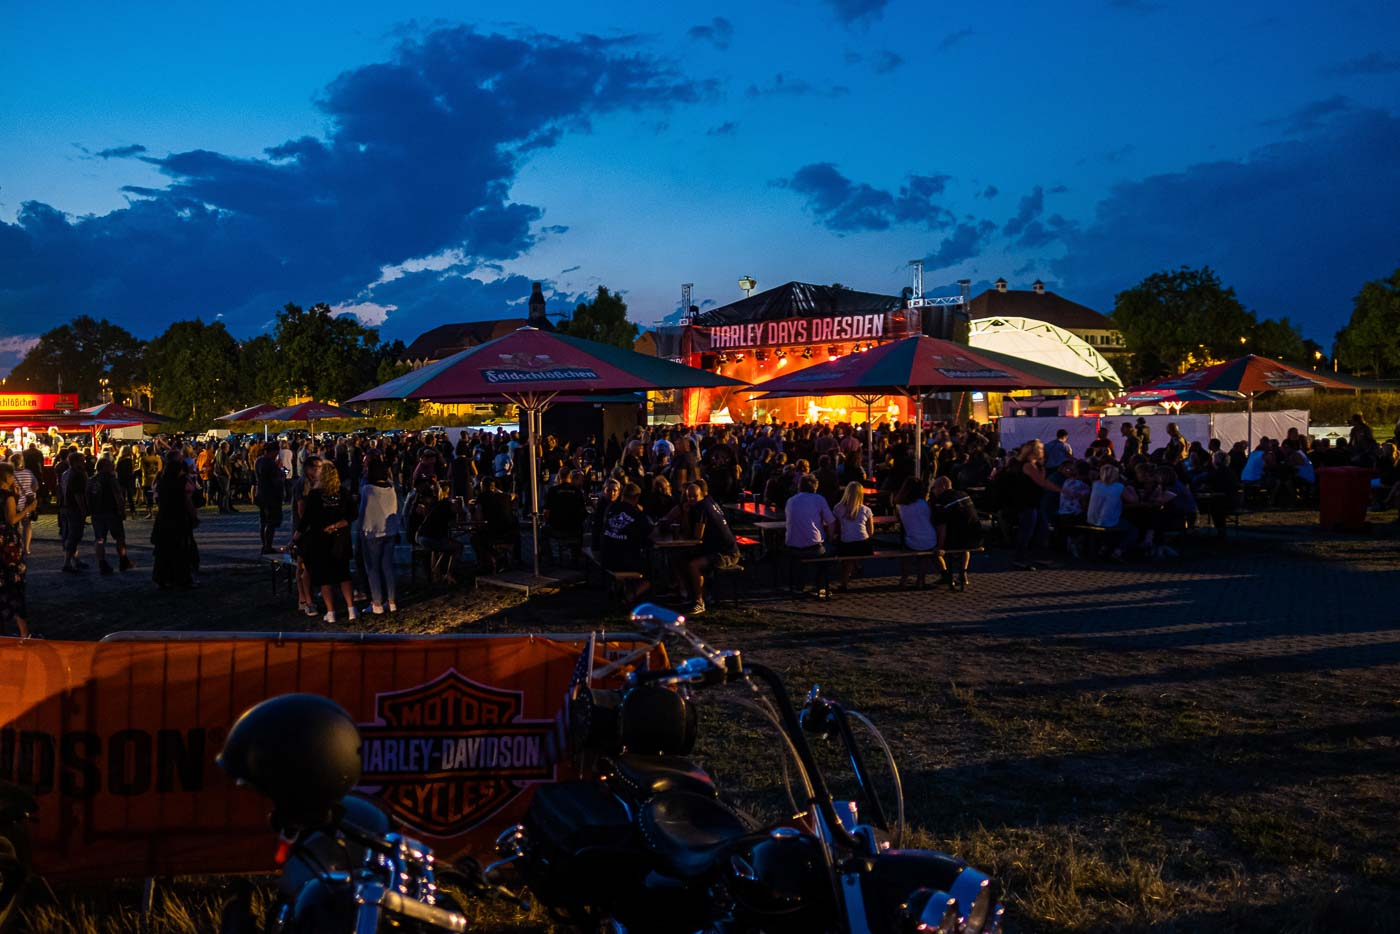 2019HD28 Harley Days Dresden Review 84